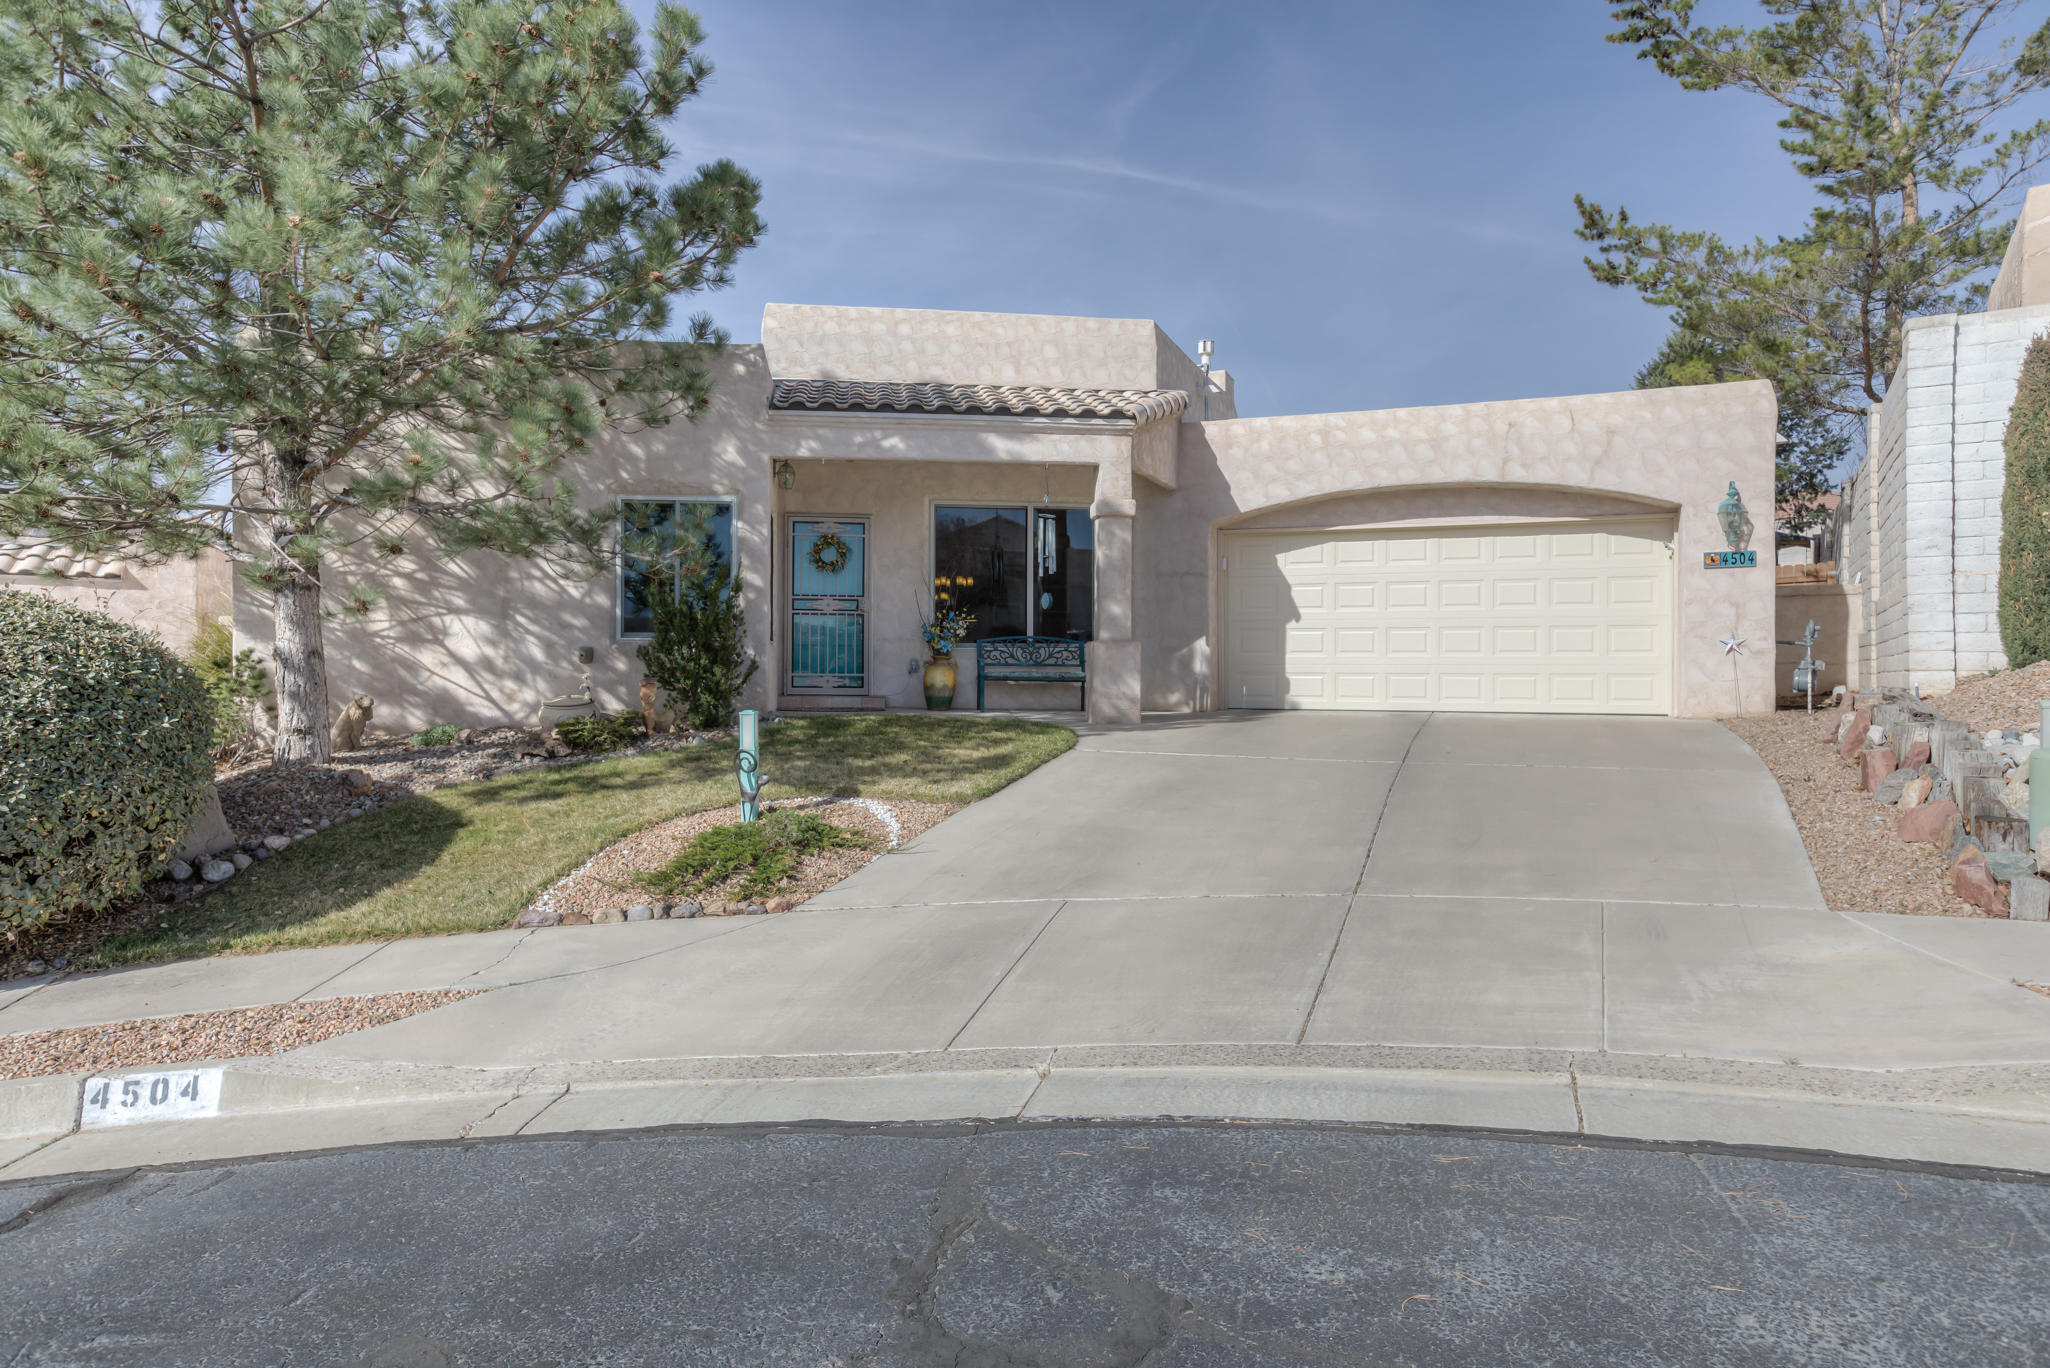 4504 NW Miramar Drive, Northwest Albuquerque and Northwest Heights, New Mexico